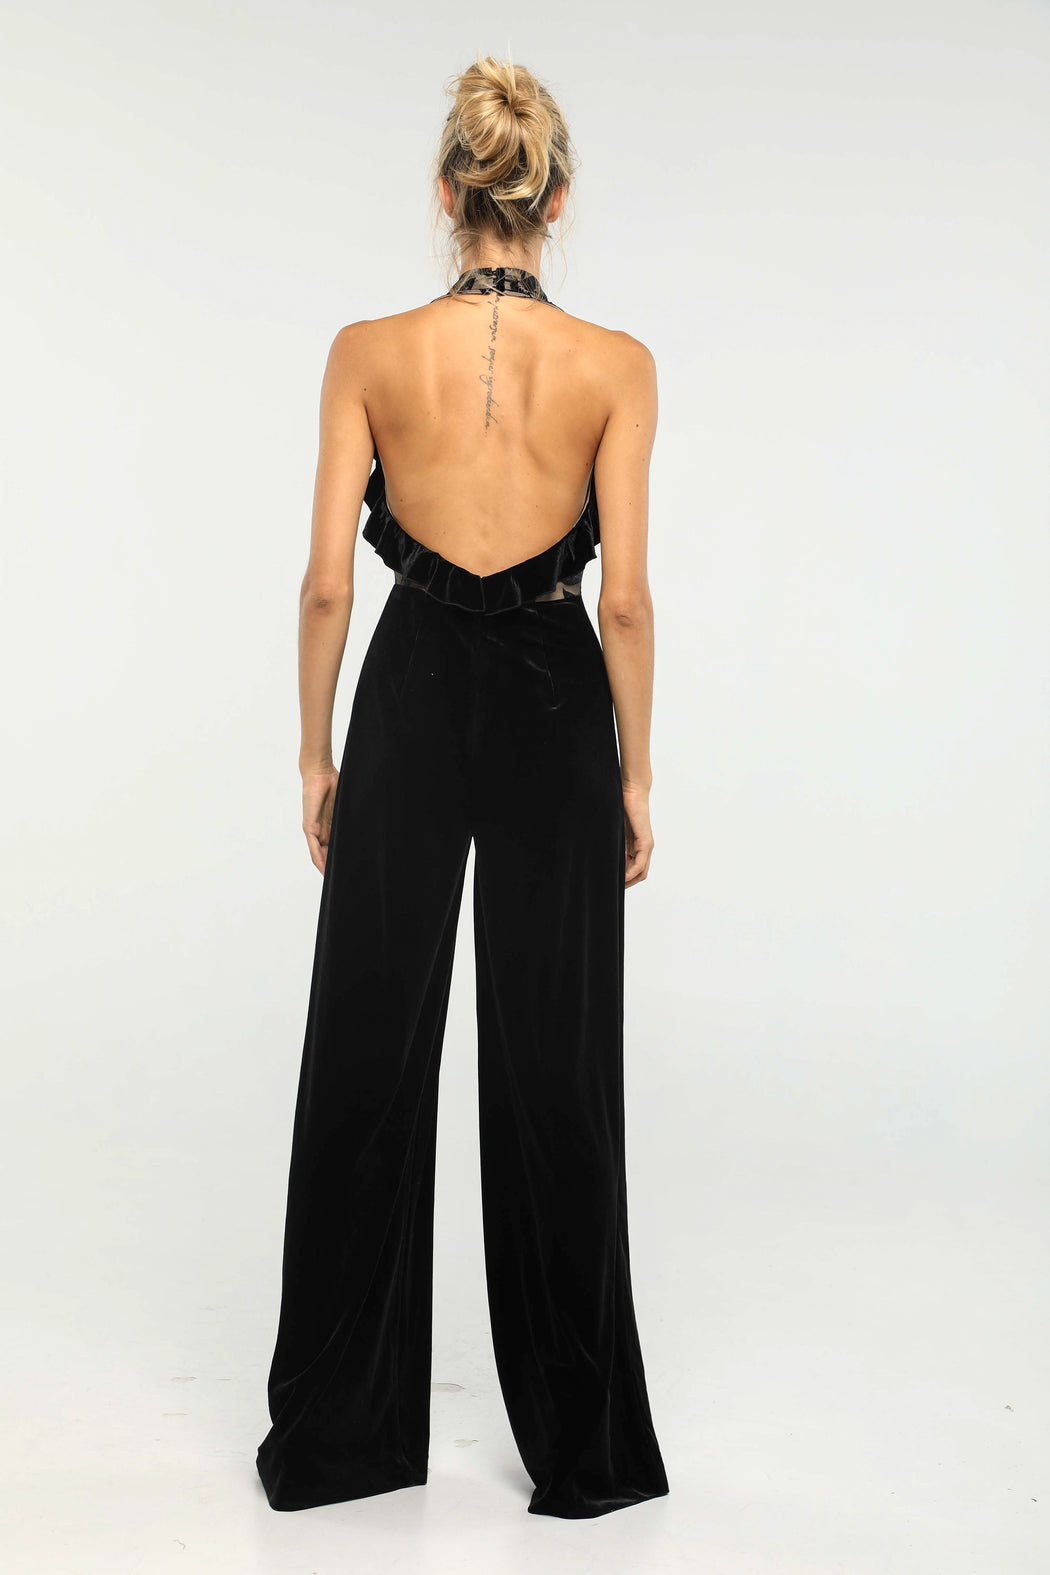 Margaux Velvet Halter Neck Jumpsuit (Black)